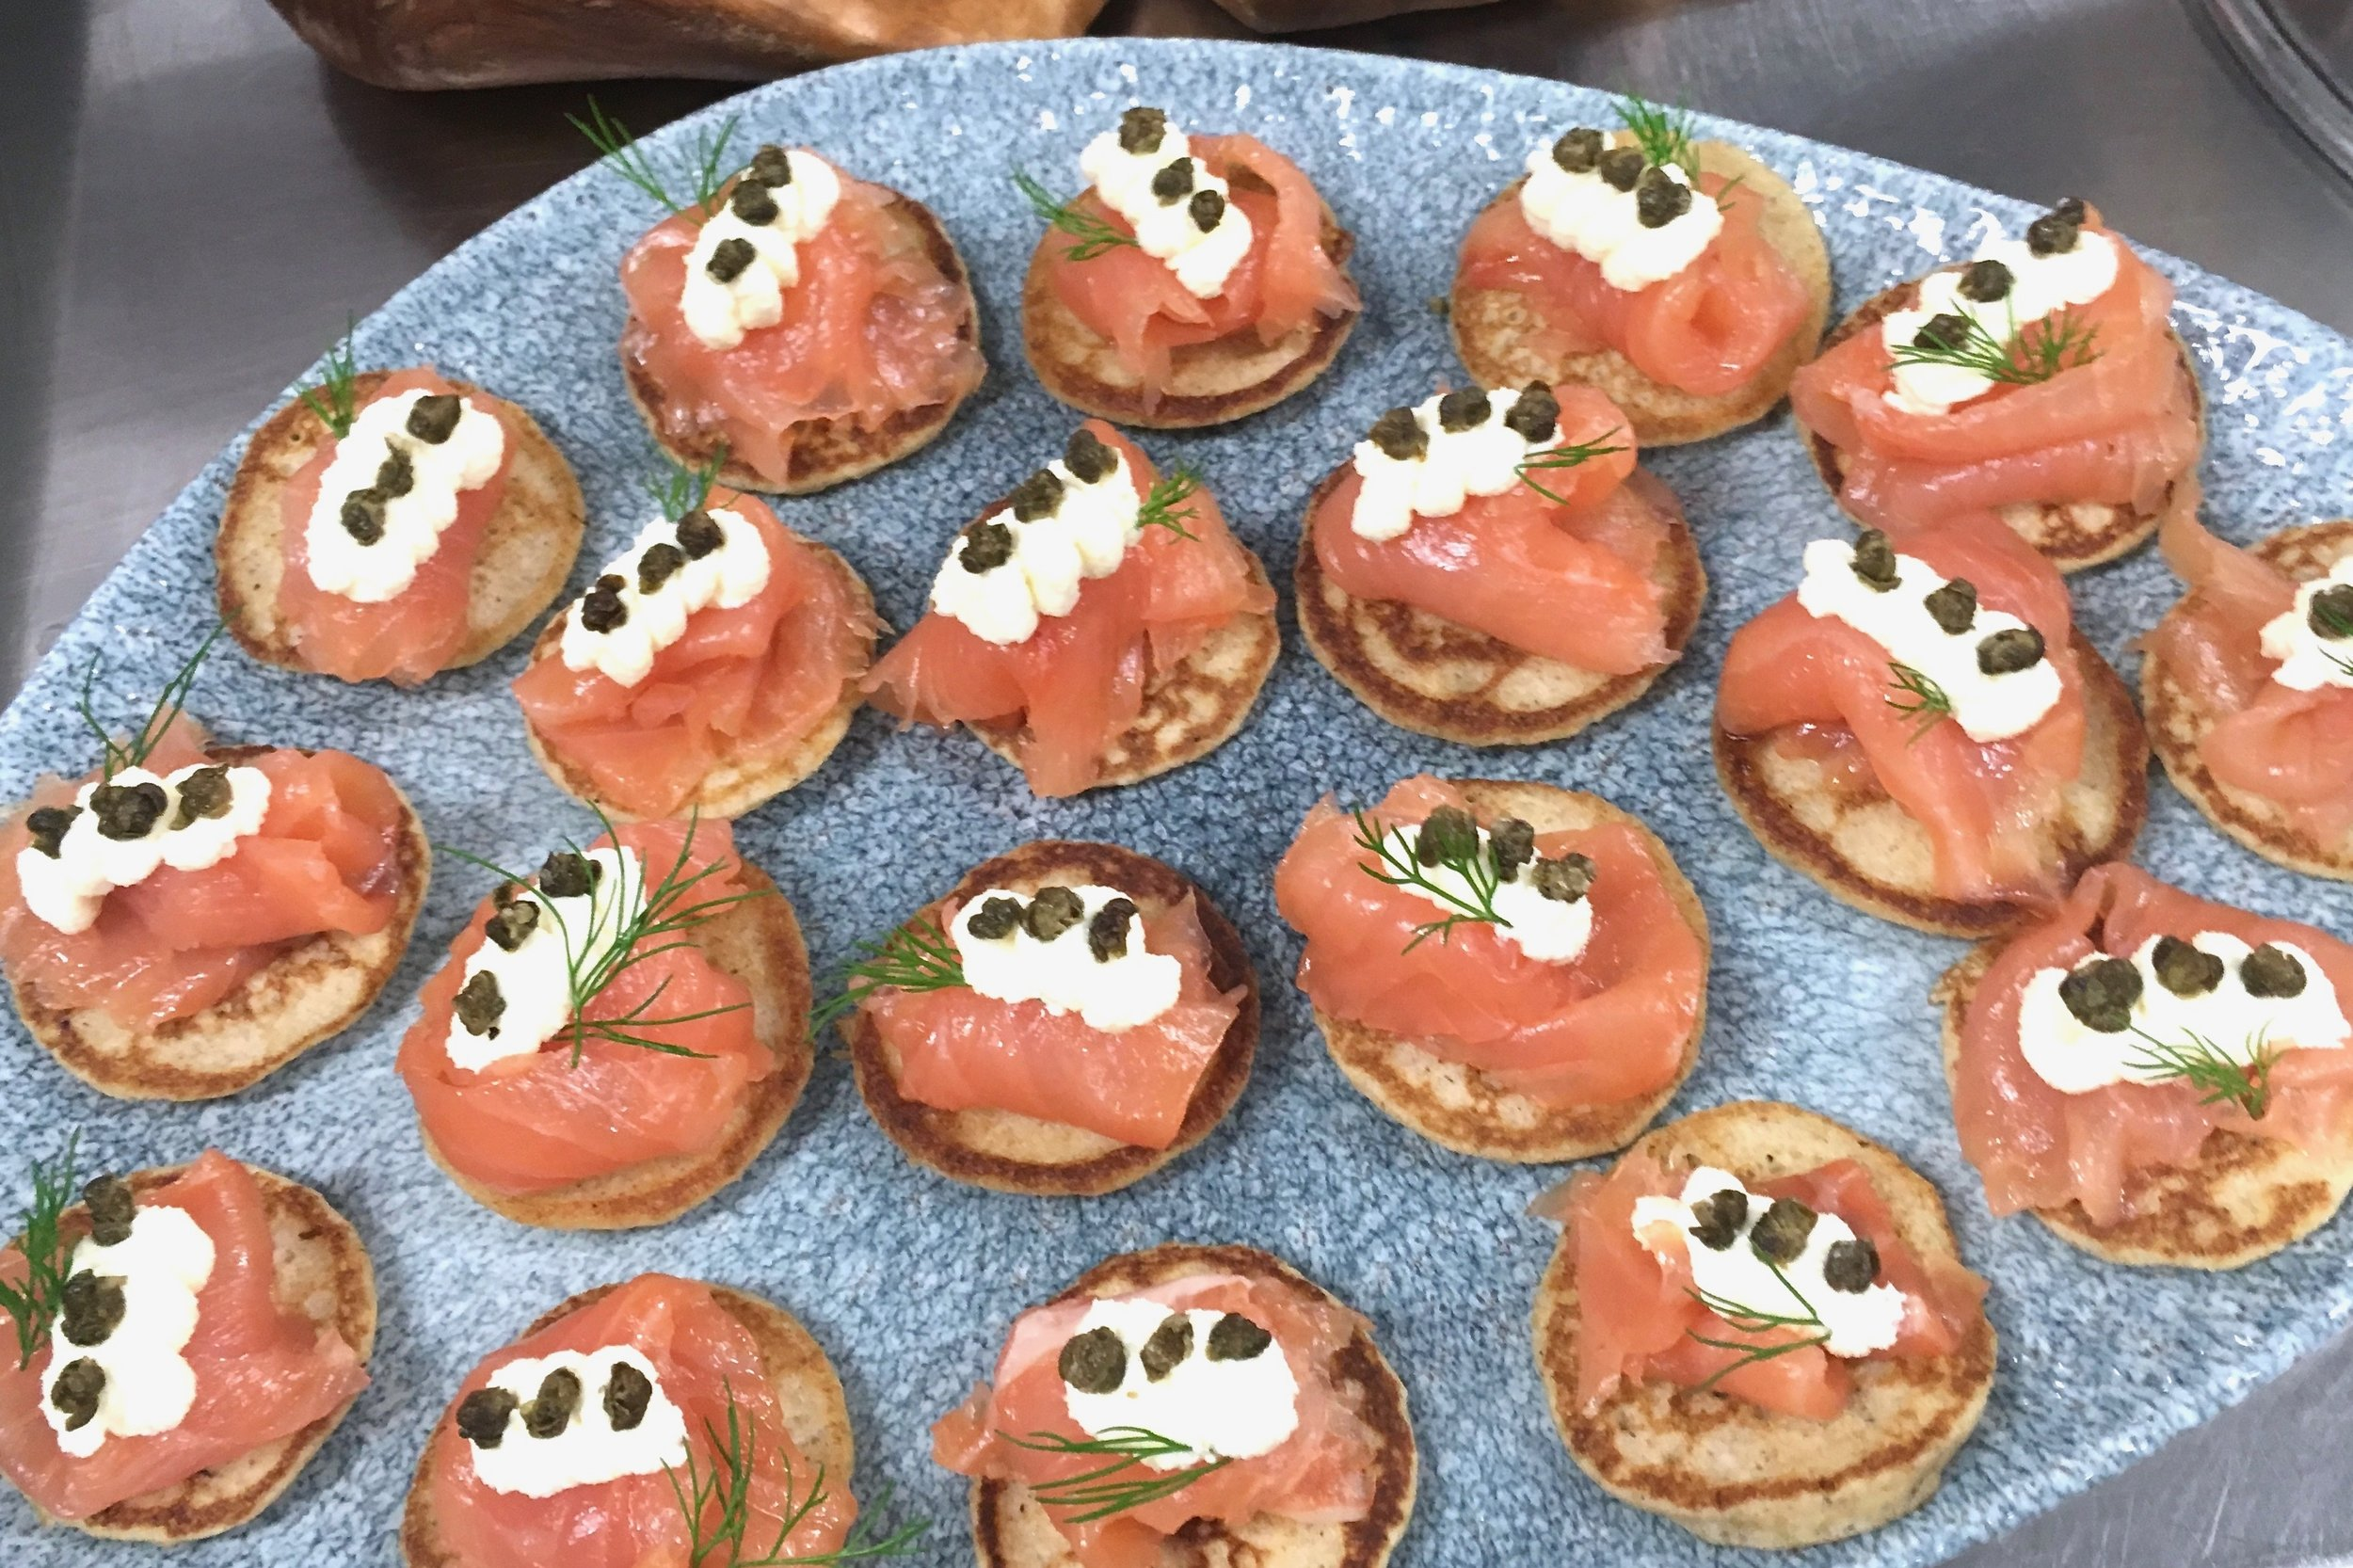 Smoked salmon on blinis with horseradish cream, crunchy capers and dill